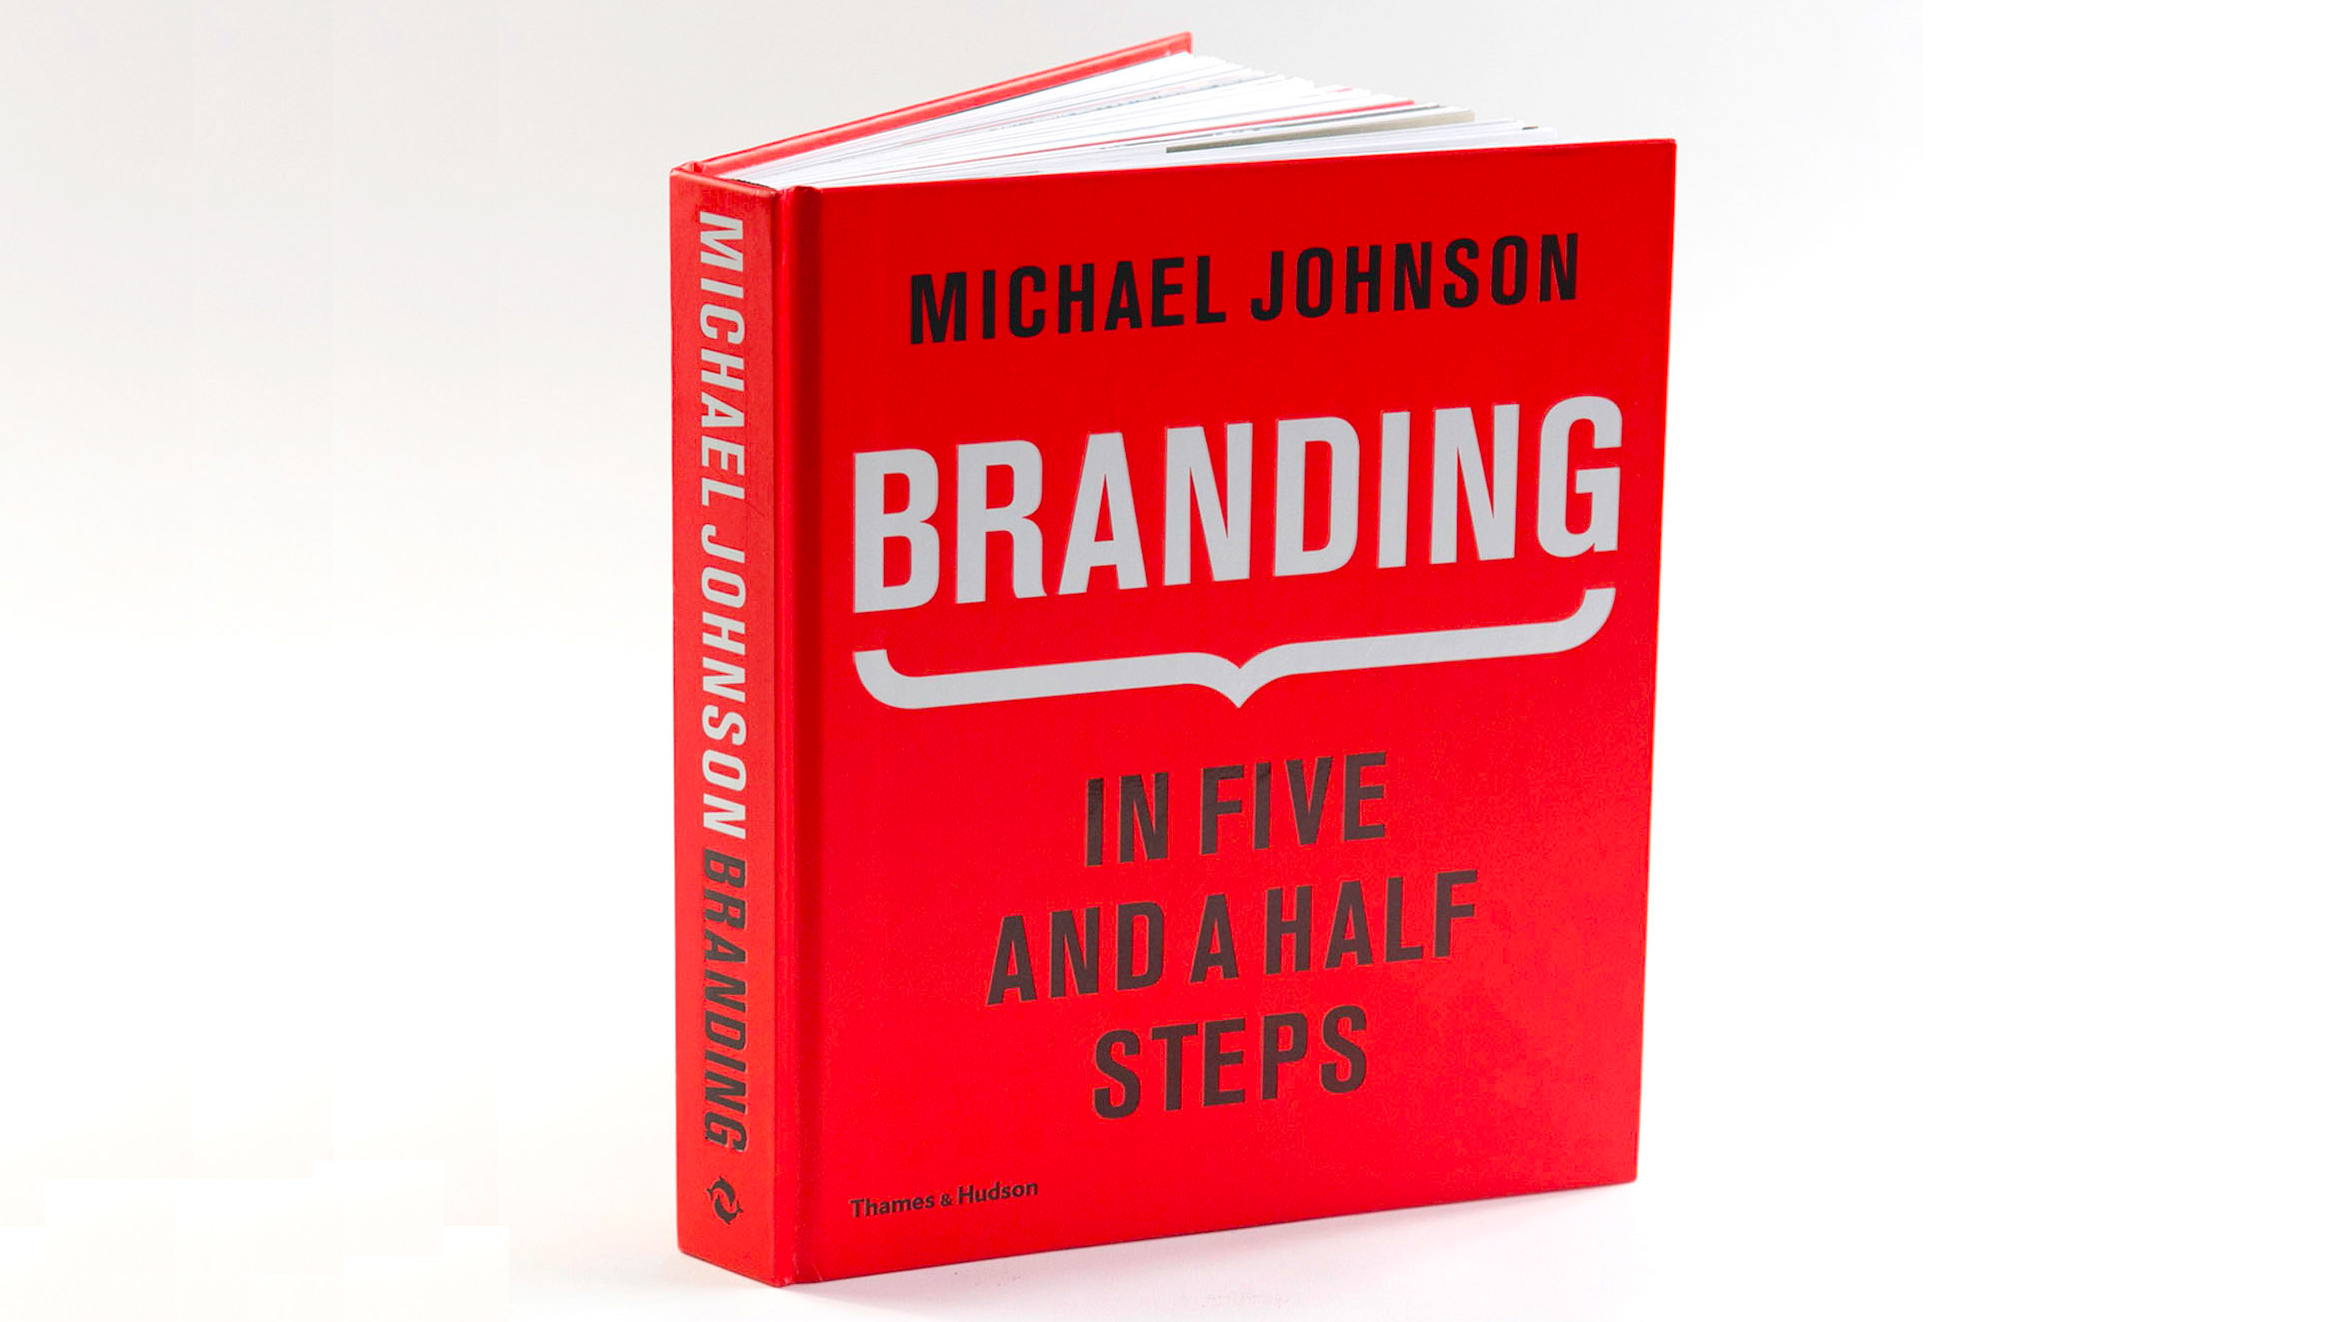 Branding: In Five and a Half Steps by Michael Johnson